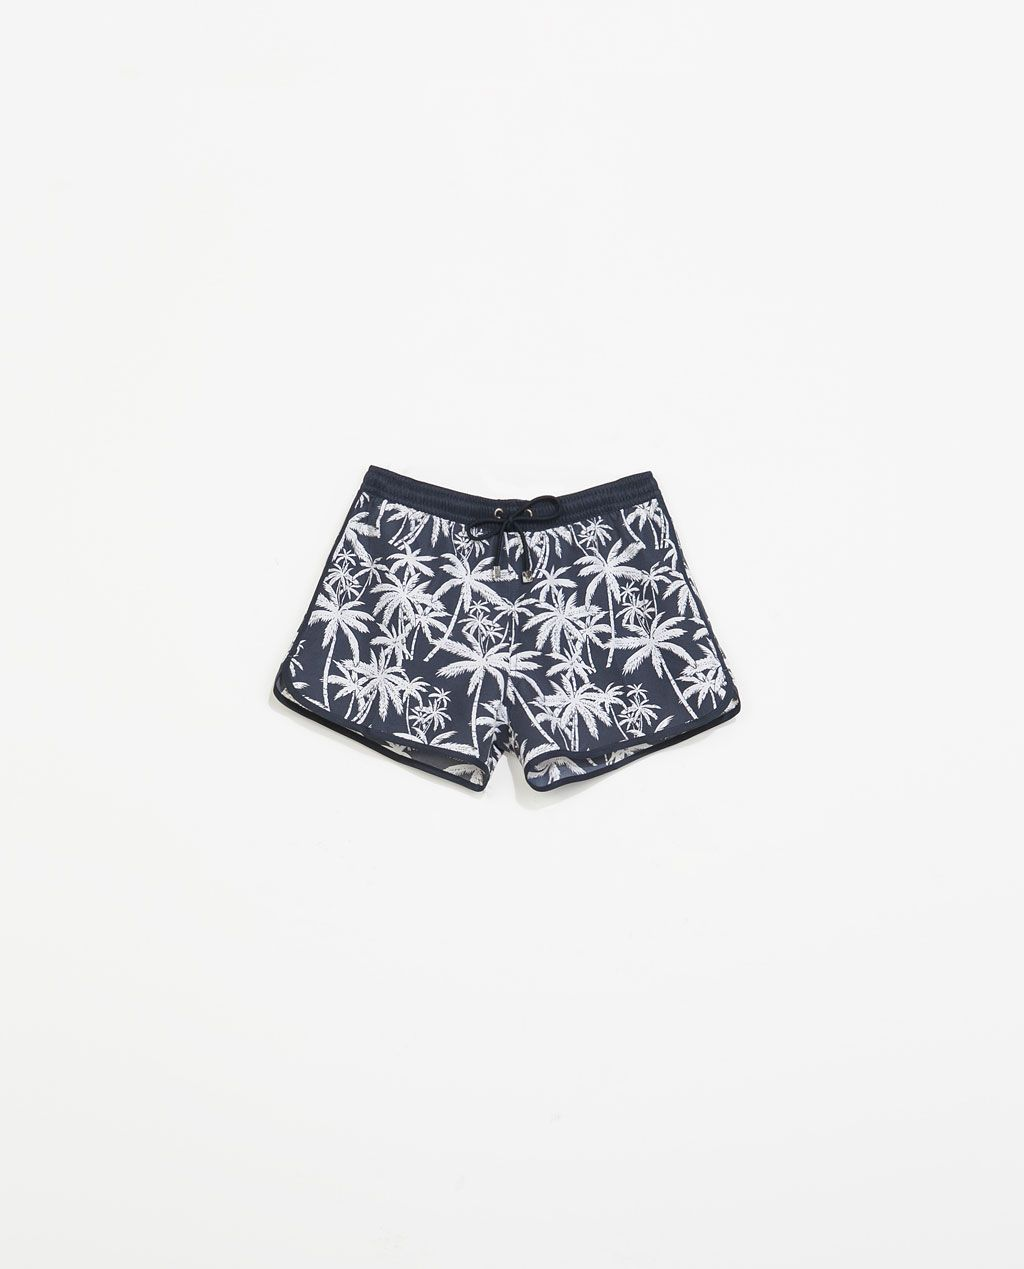 6f1f3265b1 ZARA - MAN - PALM TREE PRINT SWIMSUIT WITH CONTRASTING PIPING